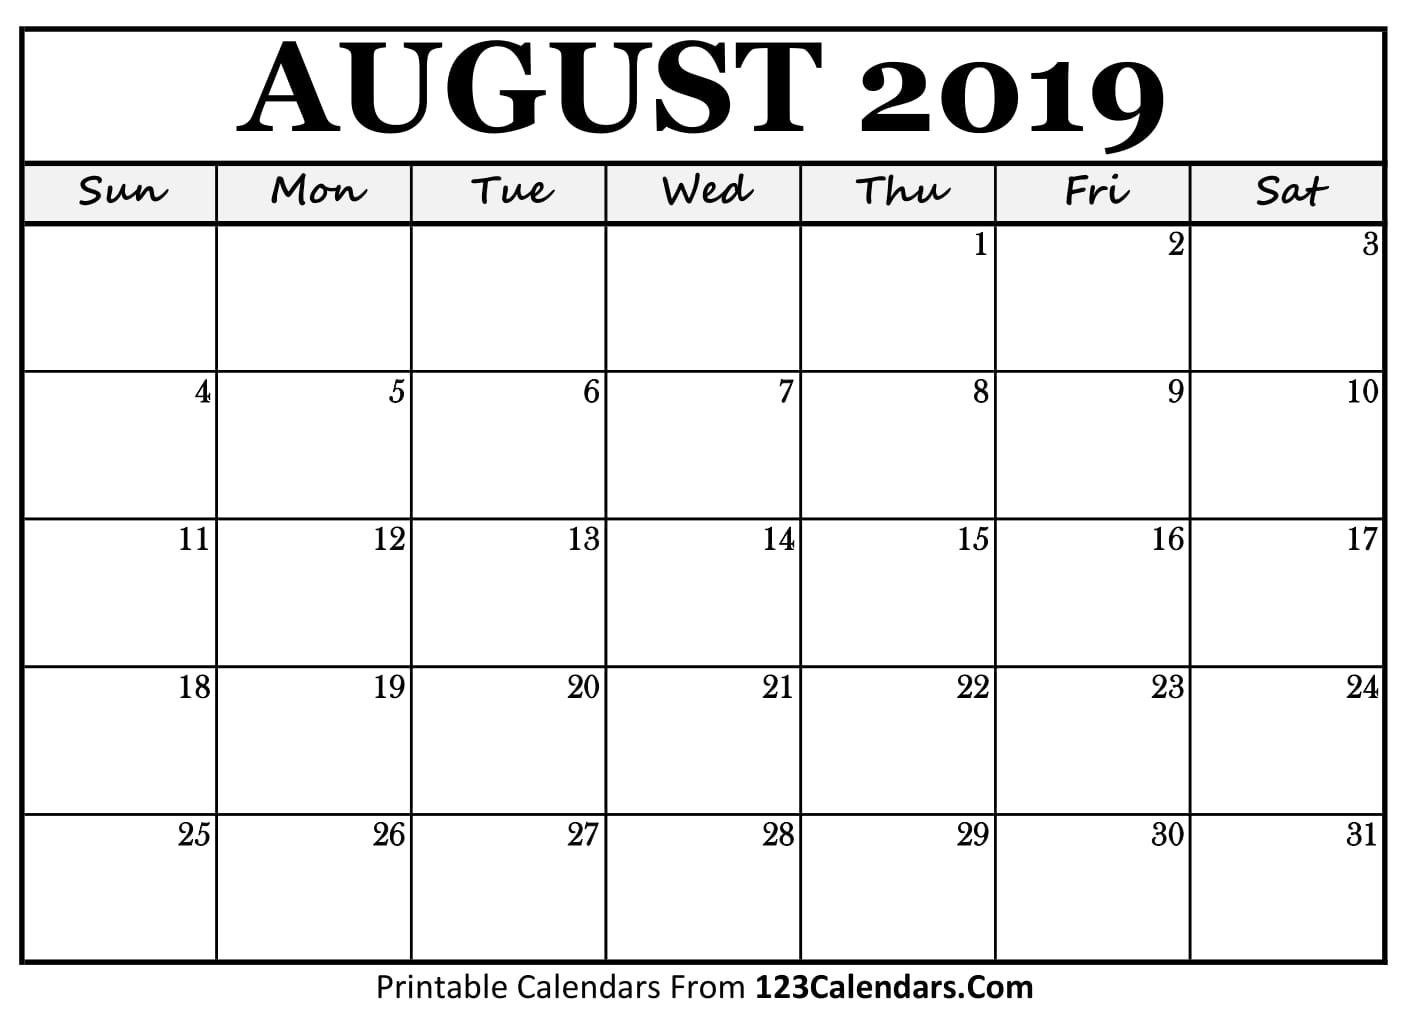 August 2019 Printable Calendar | 123Calendars intended for Downloadable Calendar Templates August